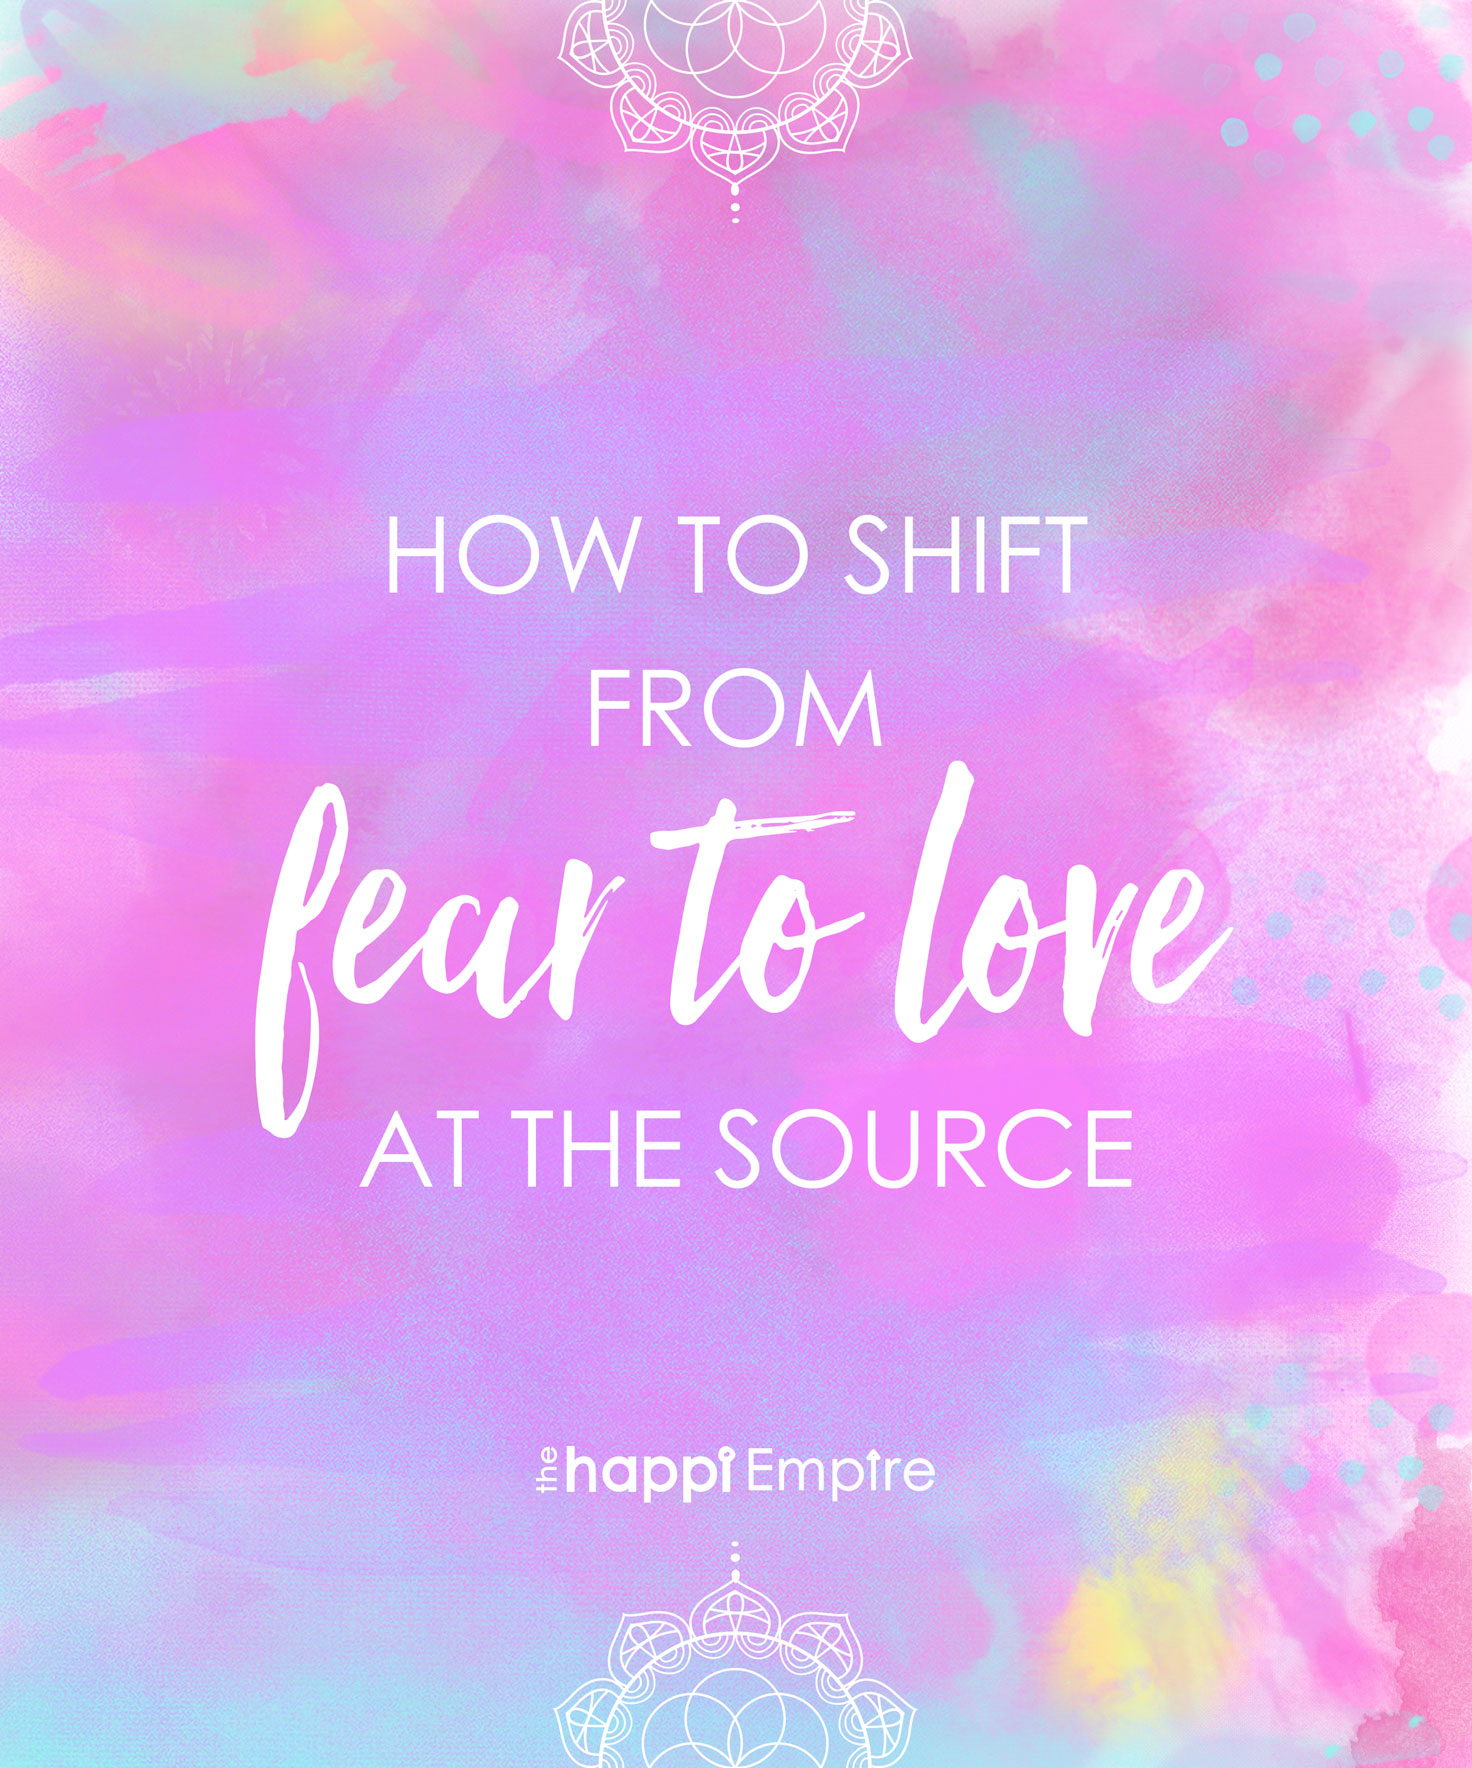 How To Shift From Fear To Love At The Source The Happi Empire